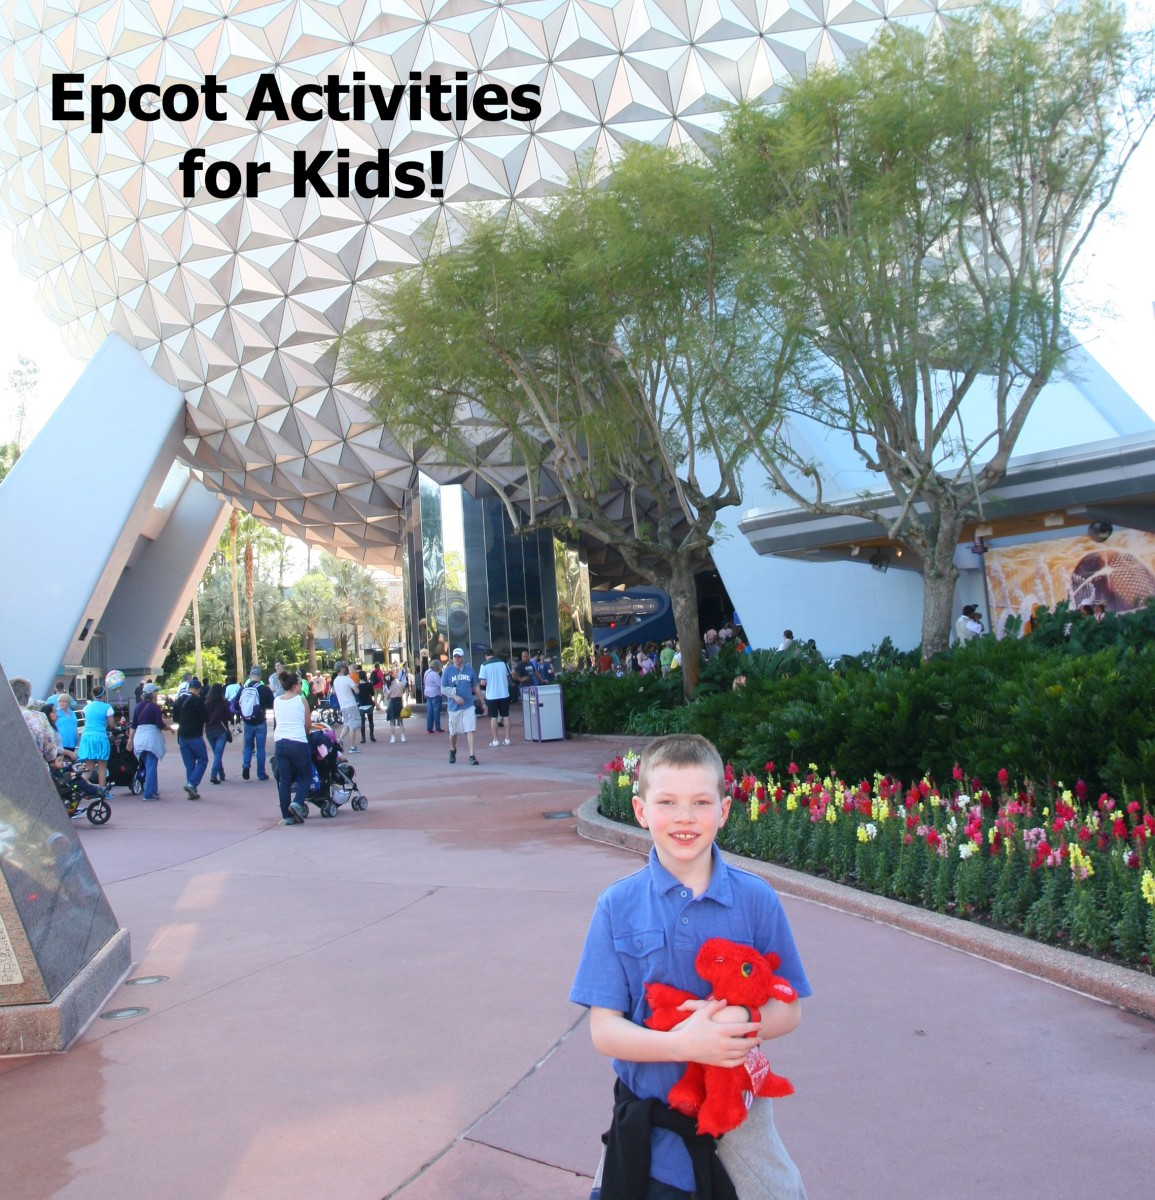 My kids have always loved Epcot. My oldest son's favorite ride is Test Track, and he loves trying different foods around the World Showcase.